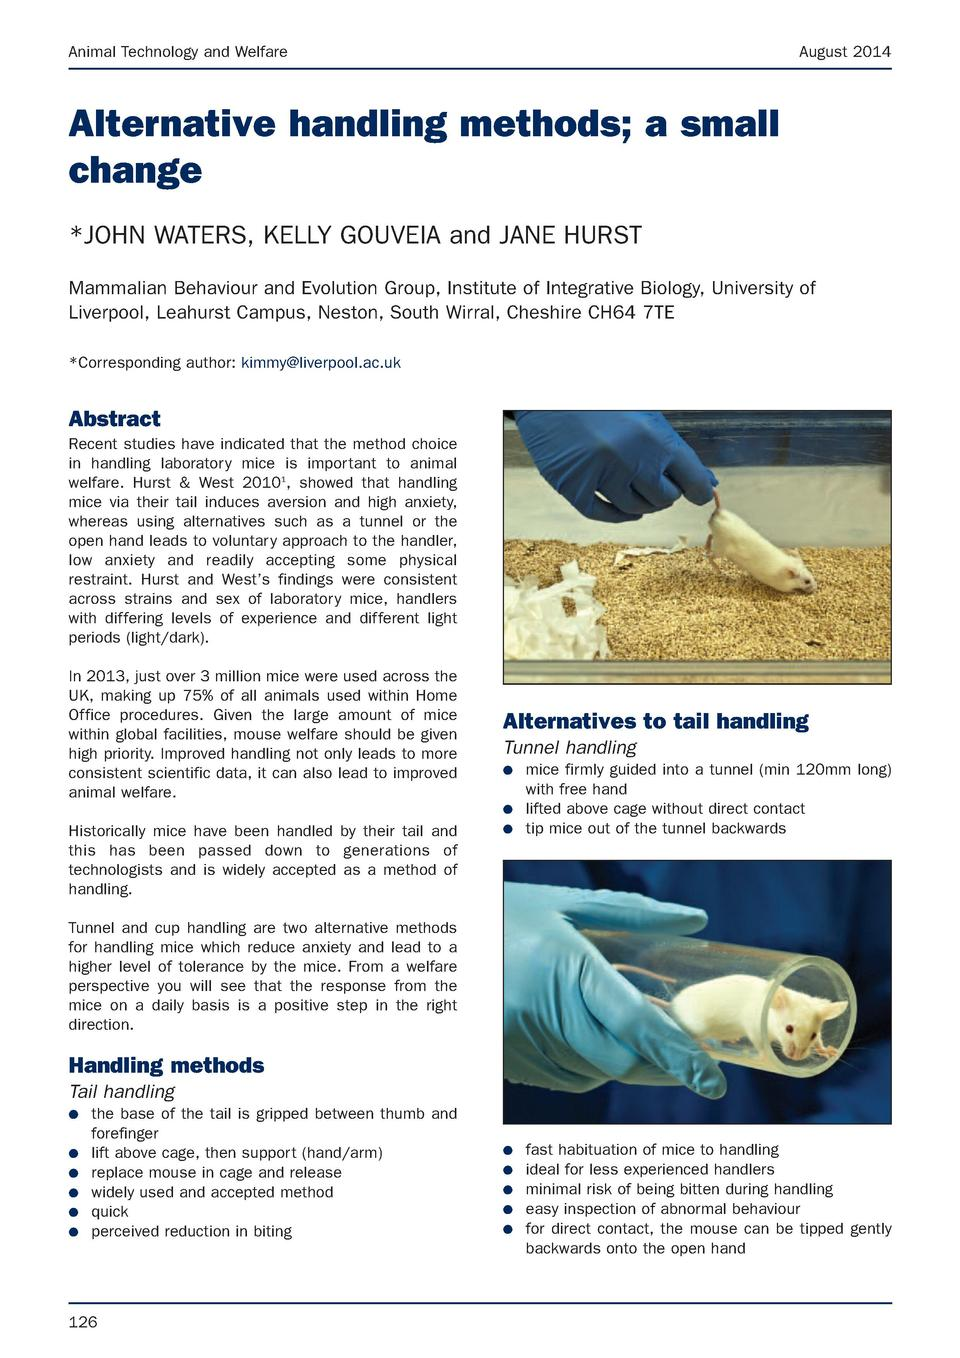 Animal Technology and Welfare  August 2014  Alternative handling methods  a small change  JOHN WATERS, KELLY GOUVEIA and J...